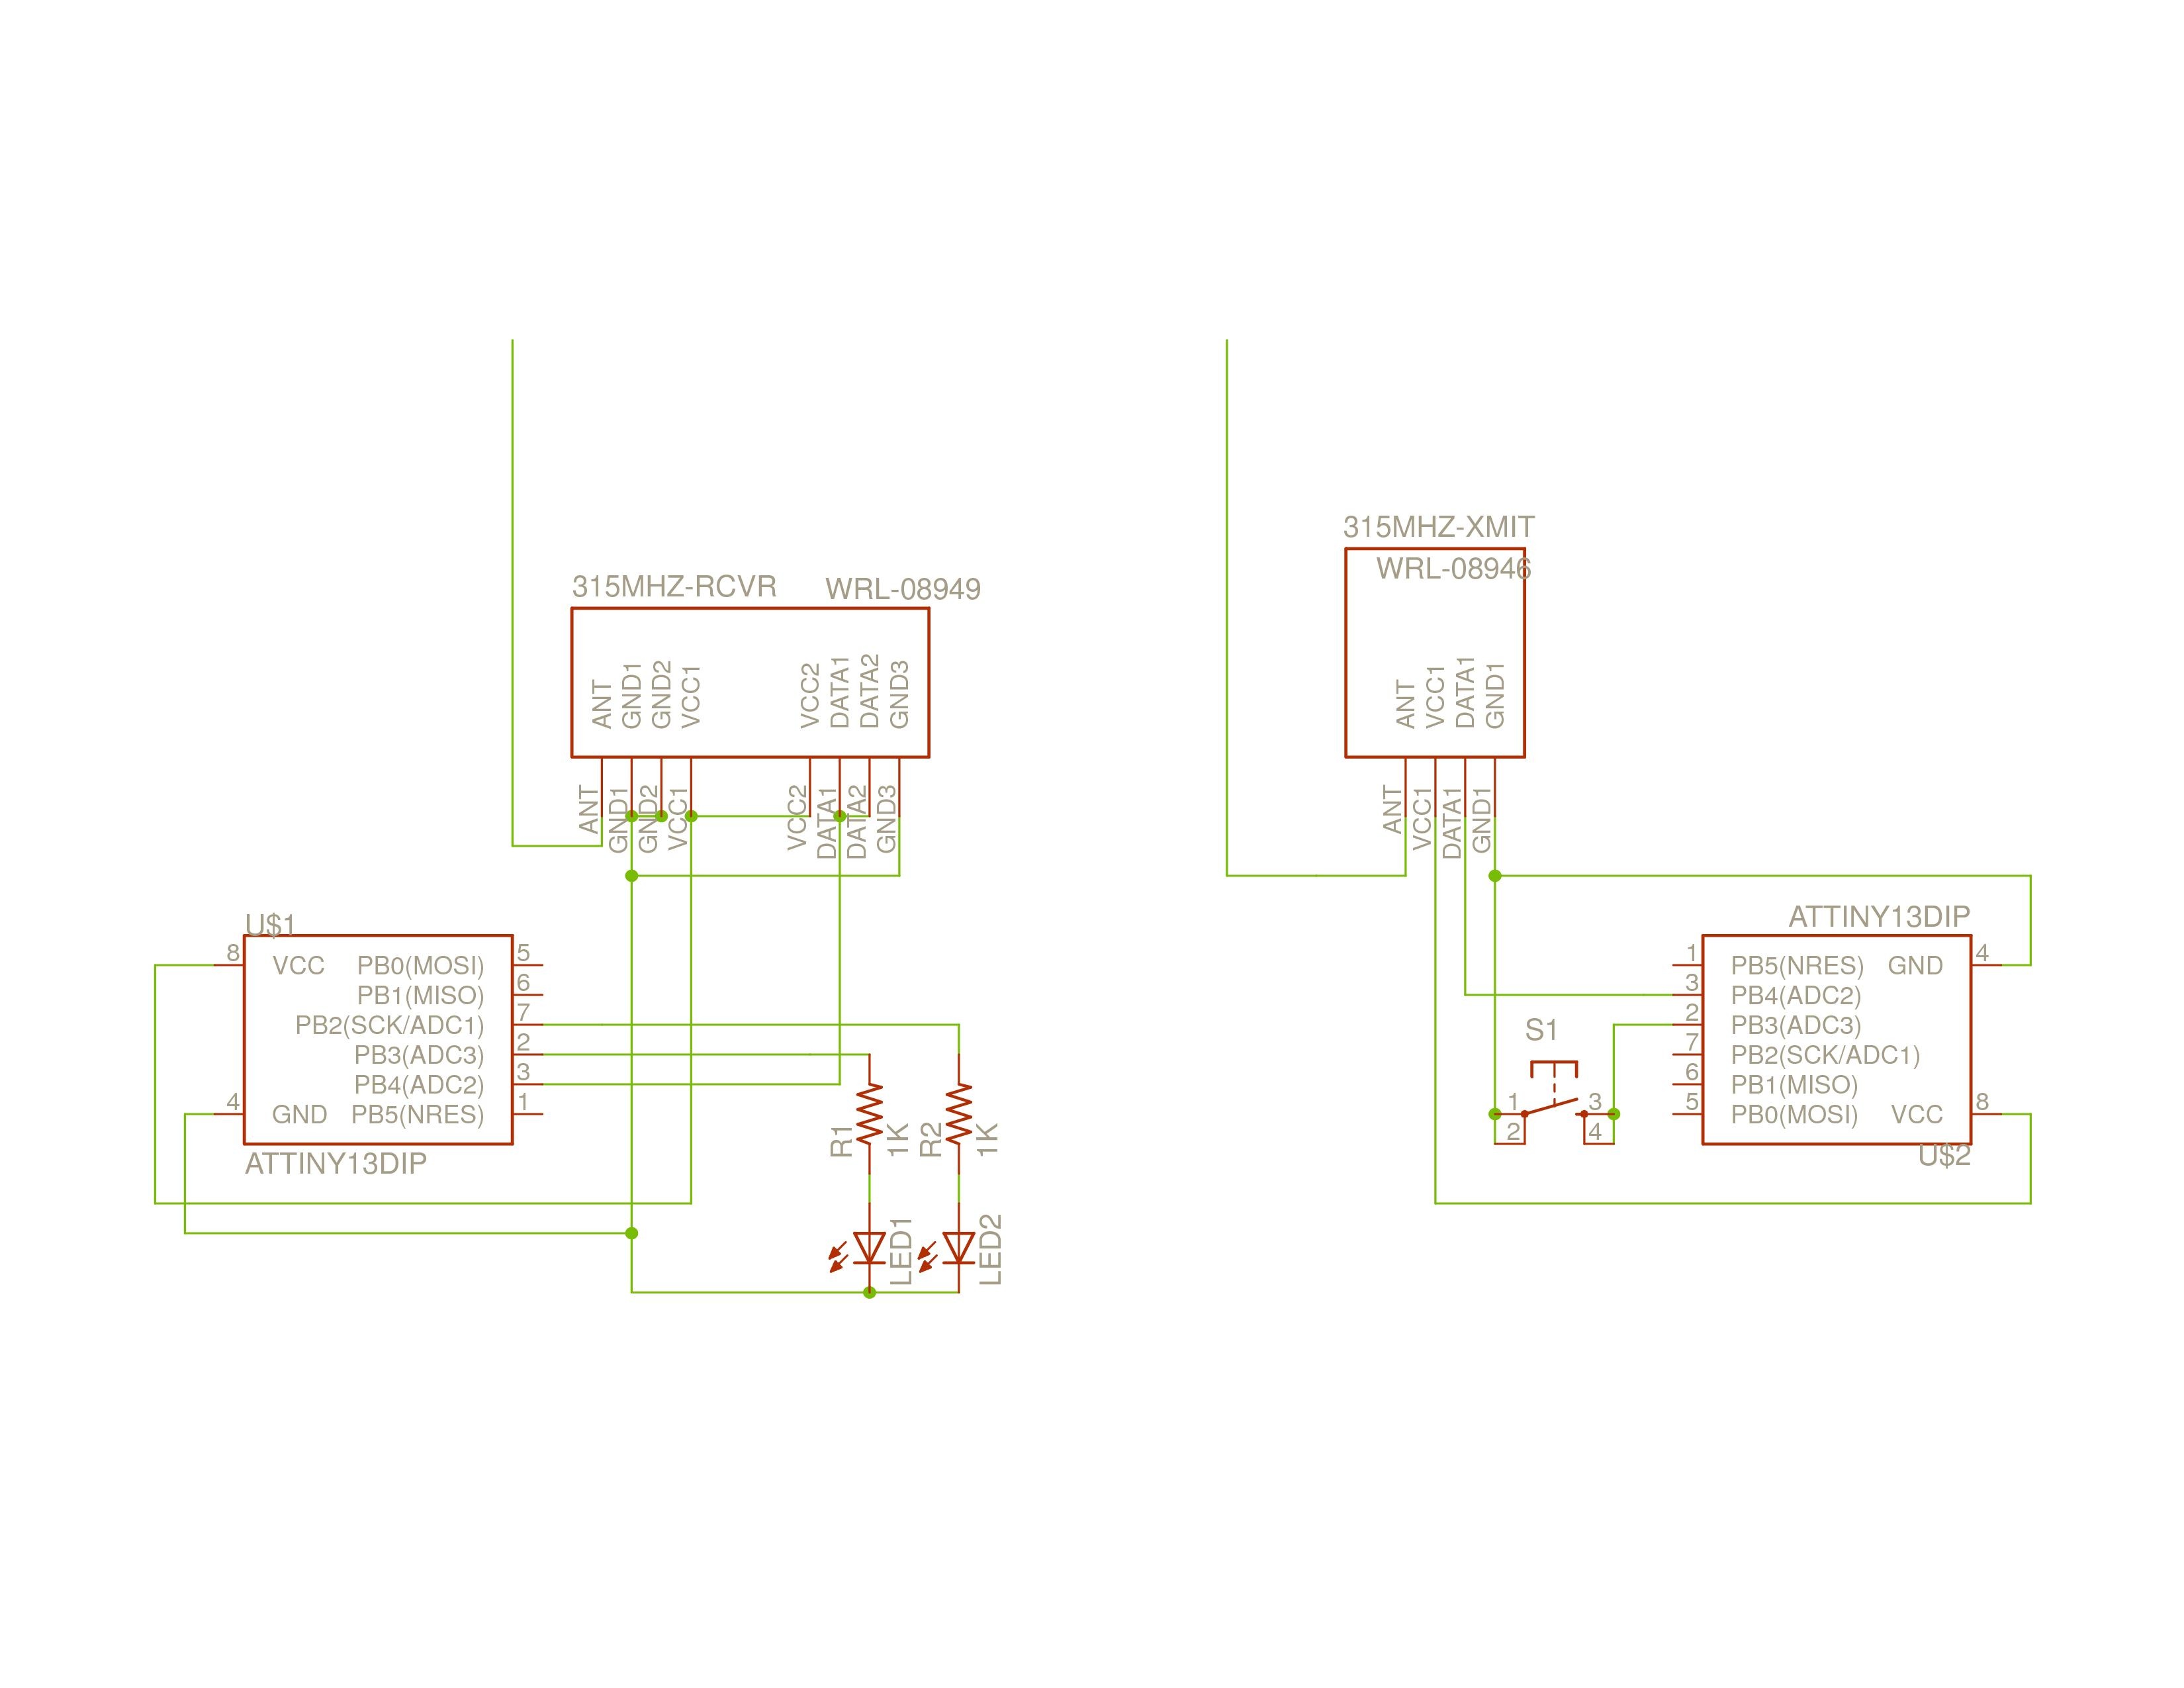 garage door sensor wiring diagram for utility trailer with brakes assembly  sixerdoodle electronics